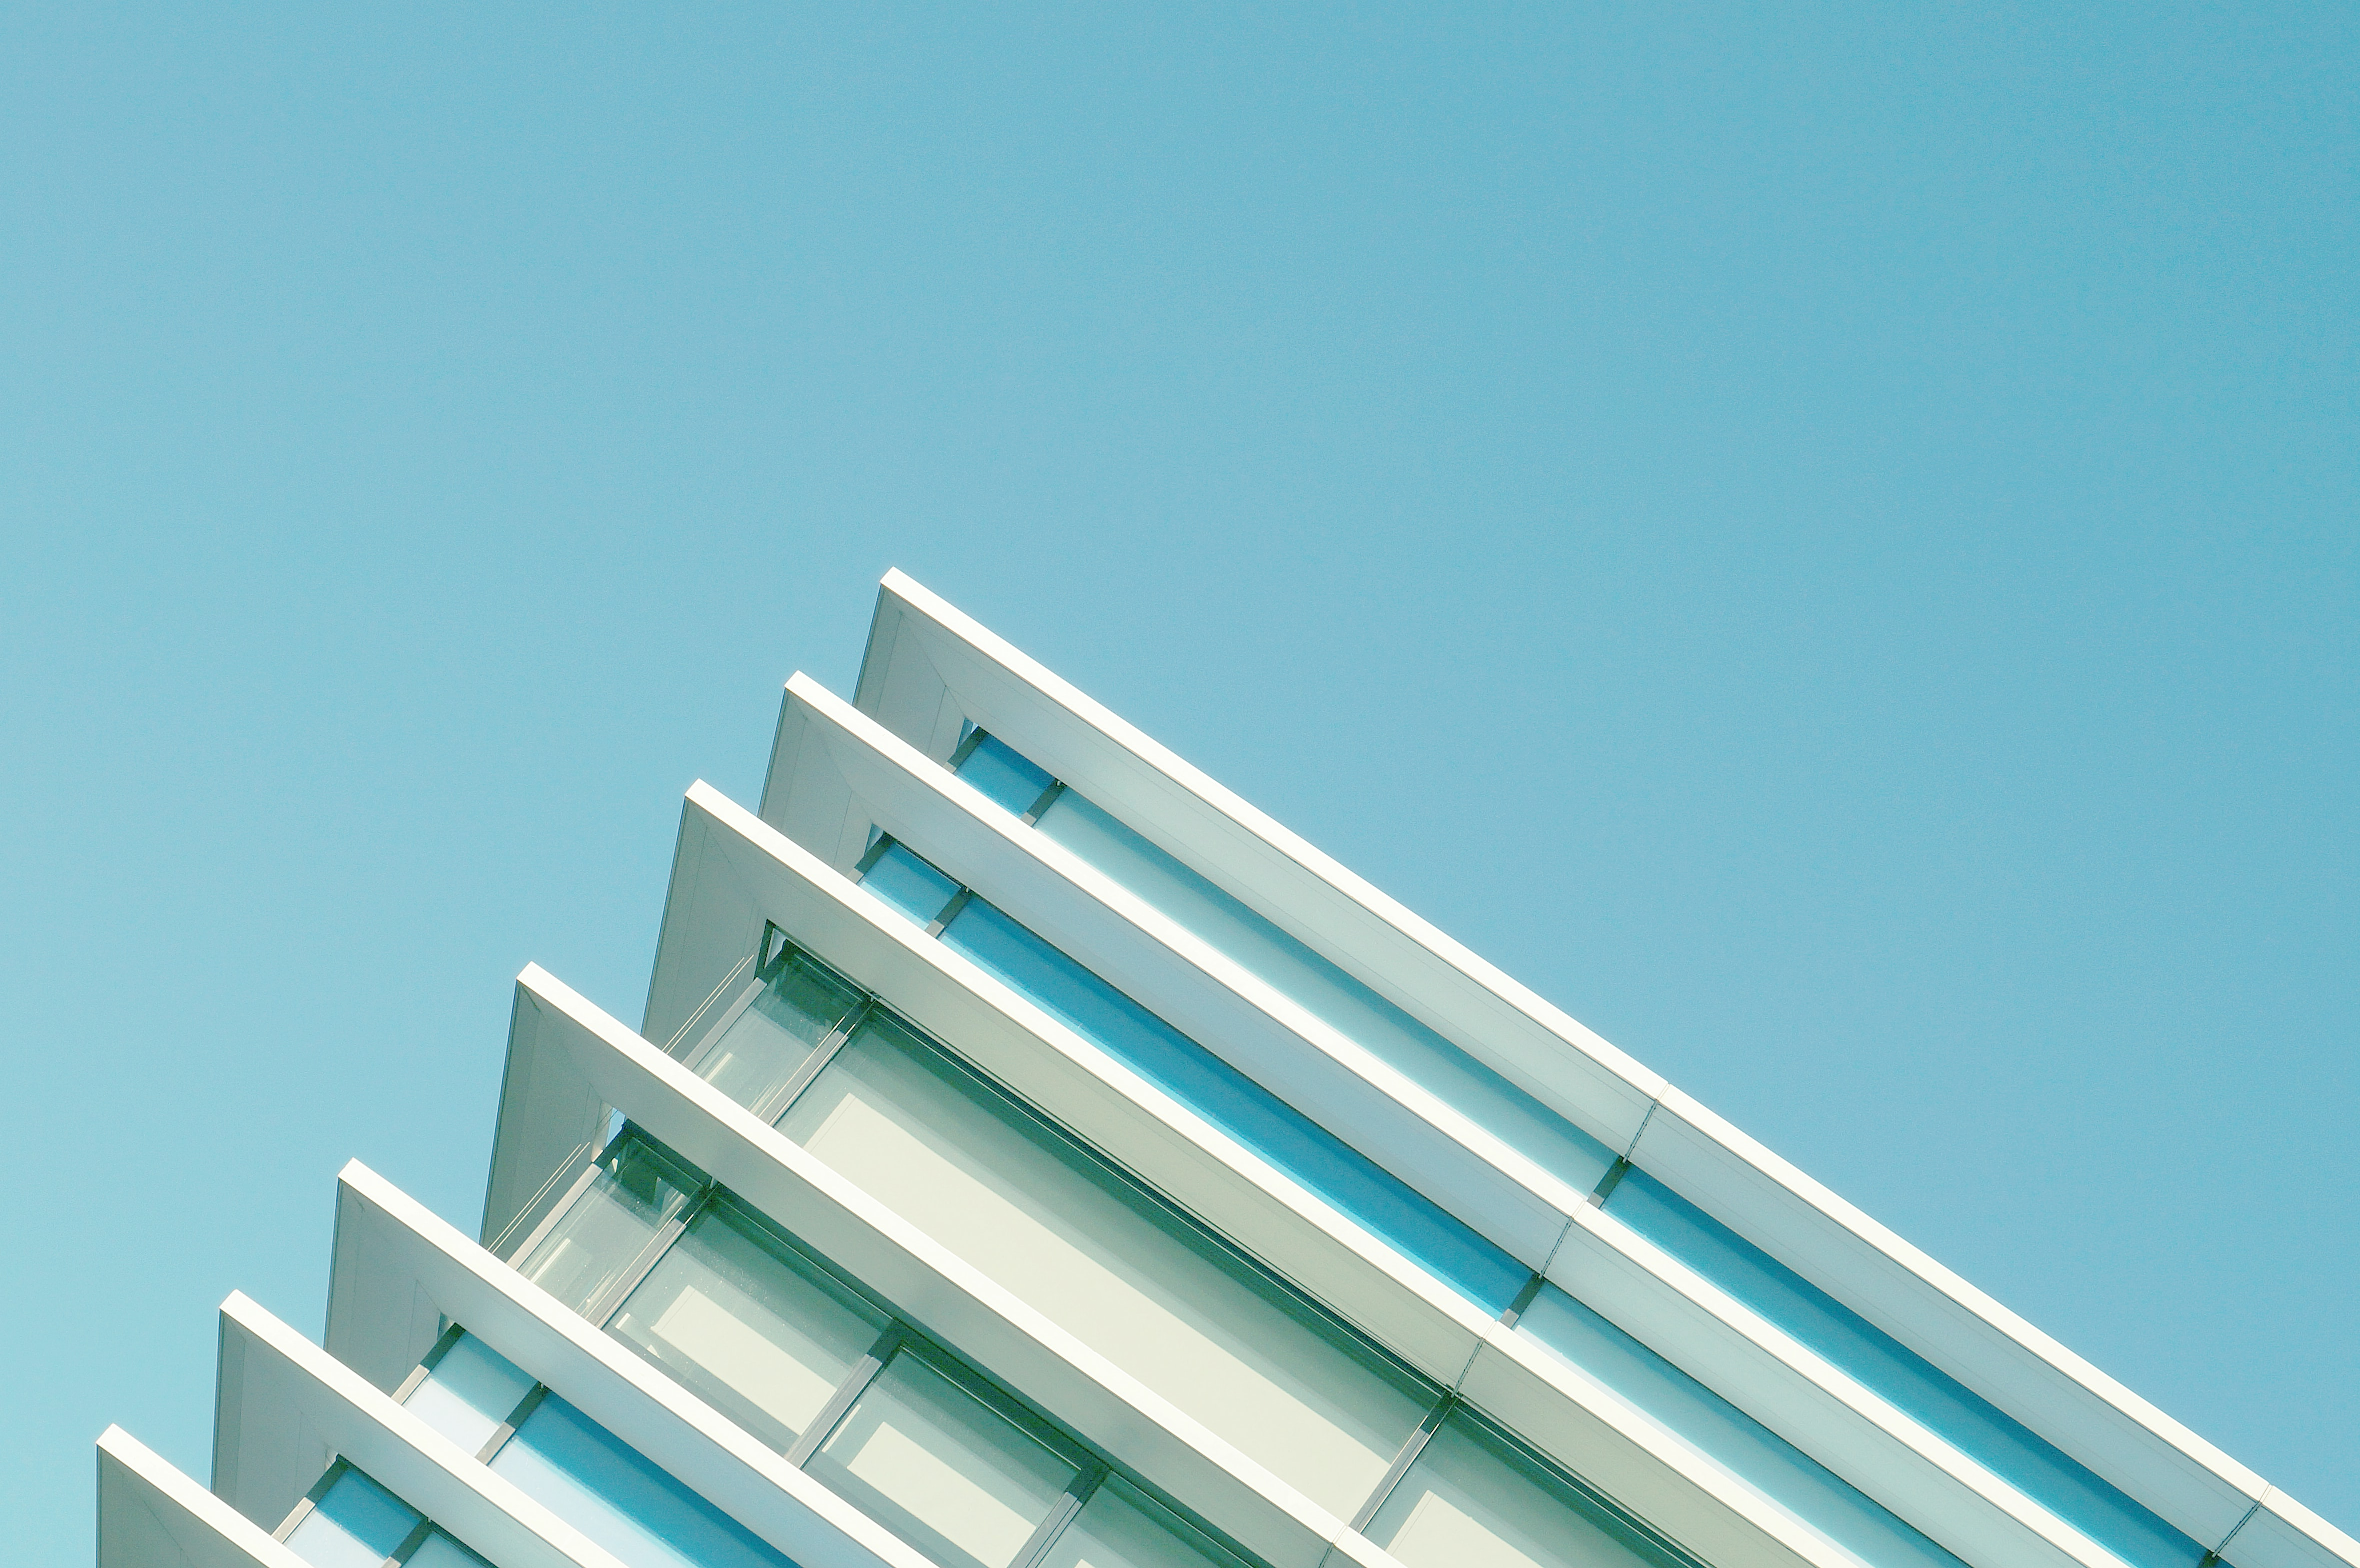 The top edge of a modern building in Aarhus, Denmark against a blue sky